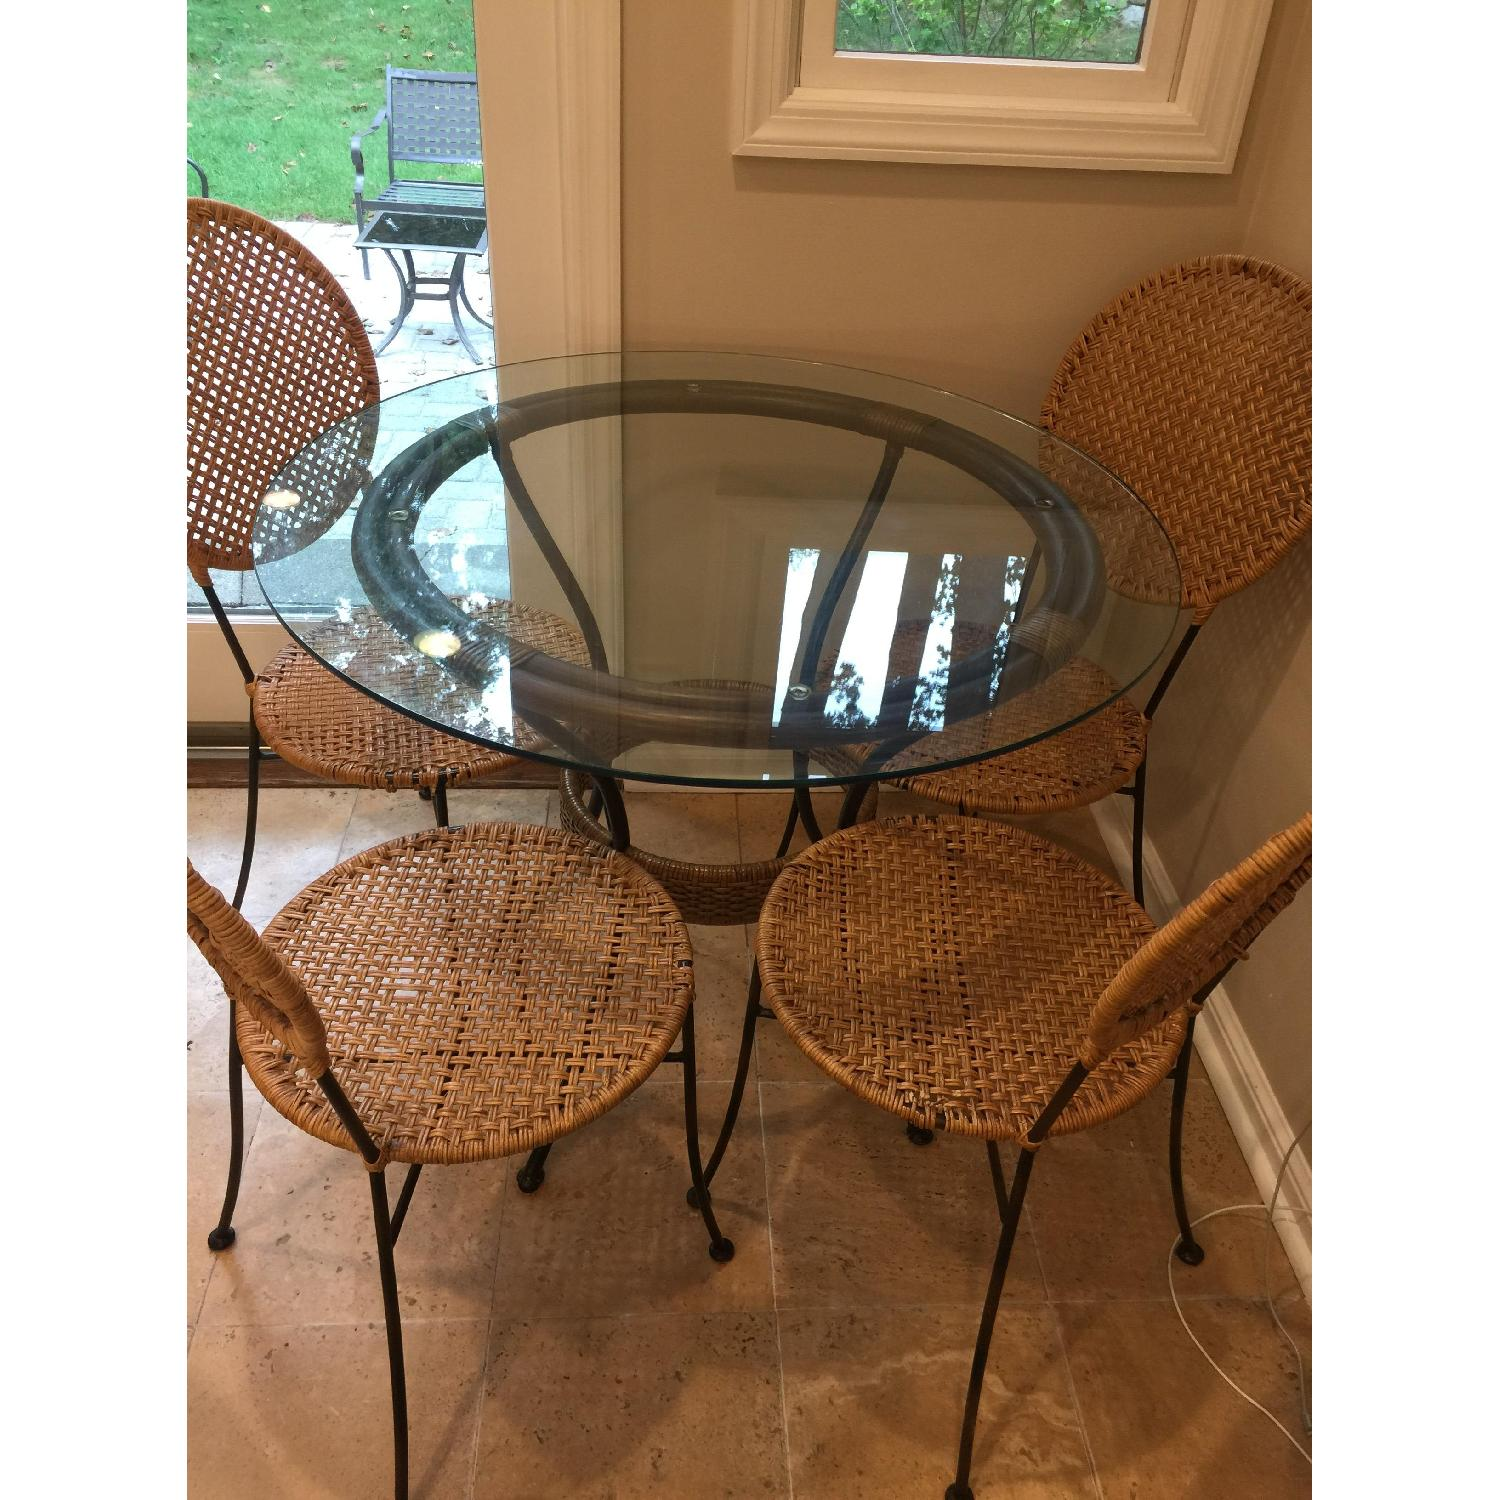 Pier 1 Round Glass Dining Table w/ 4 Chairs - image-1